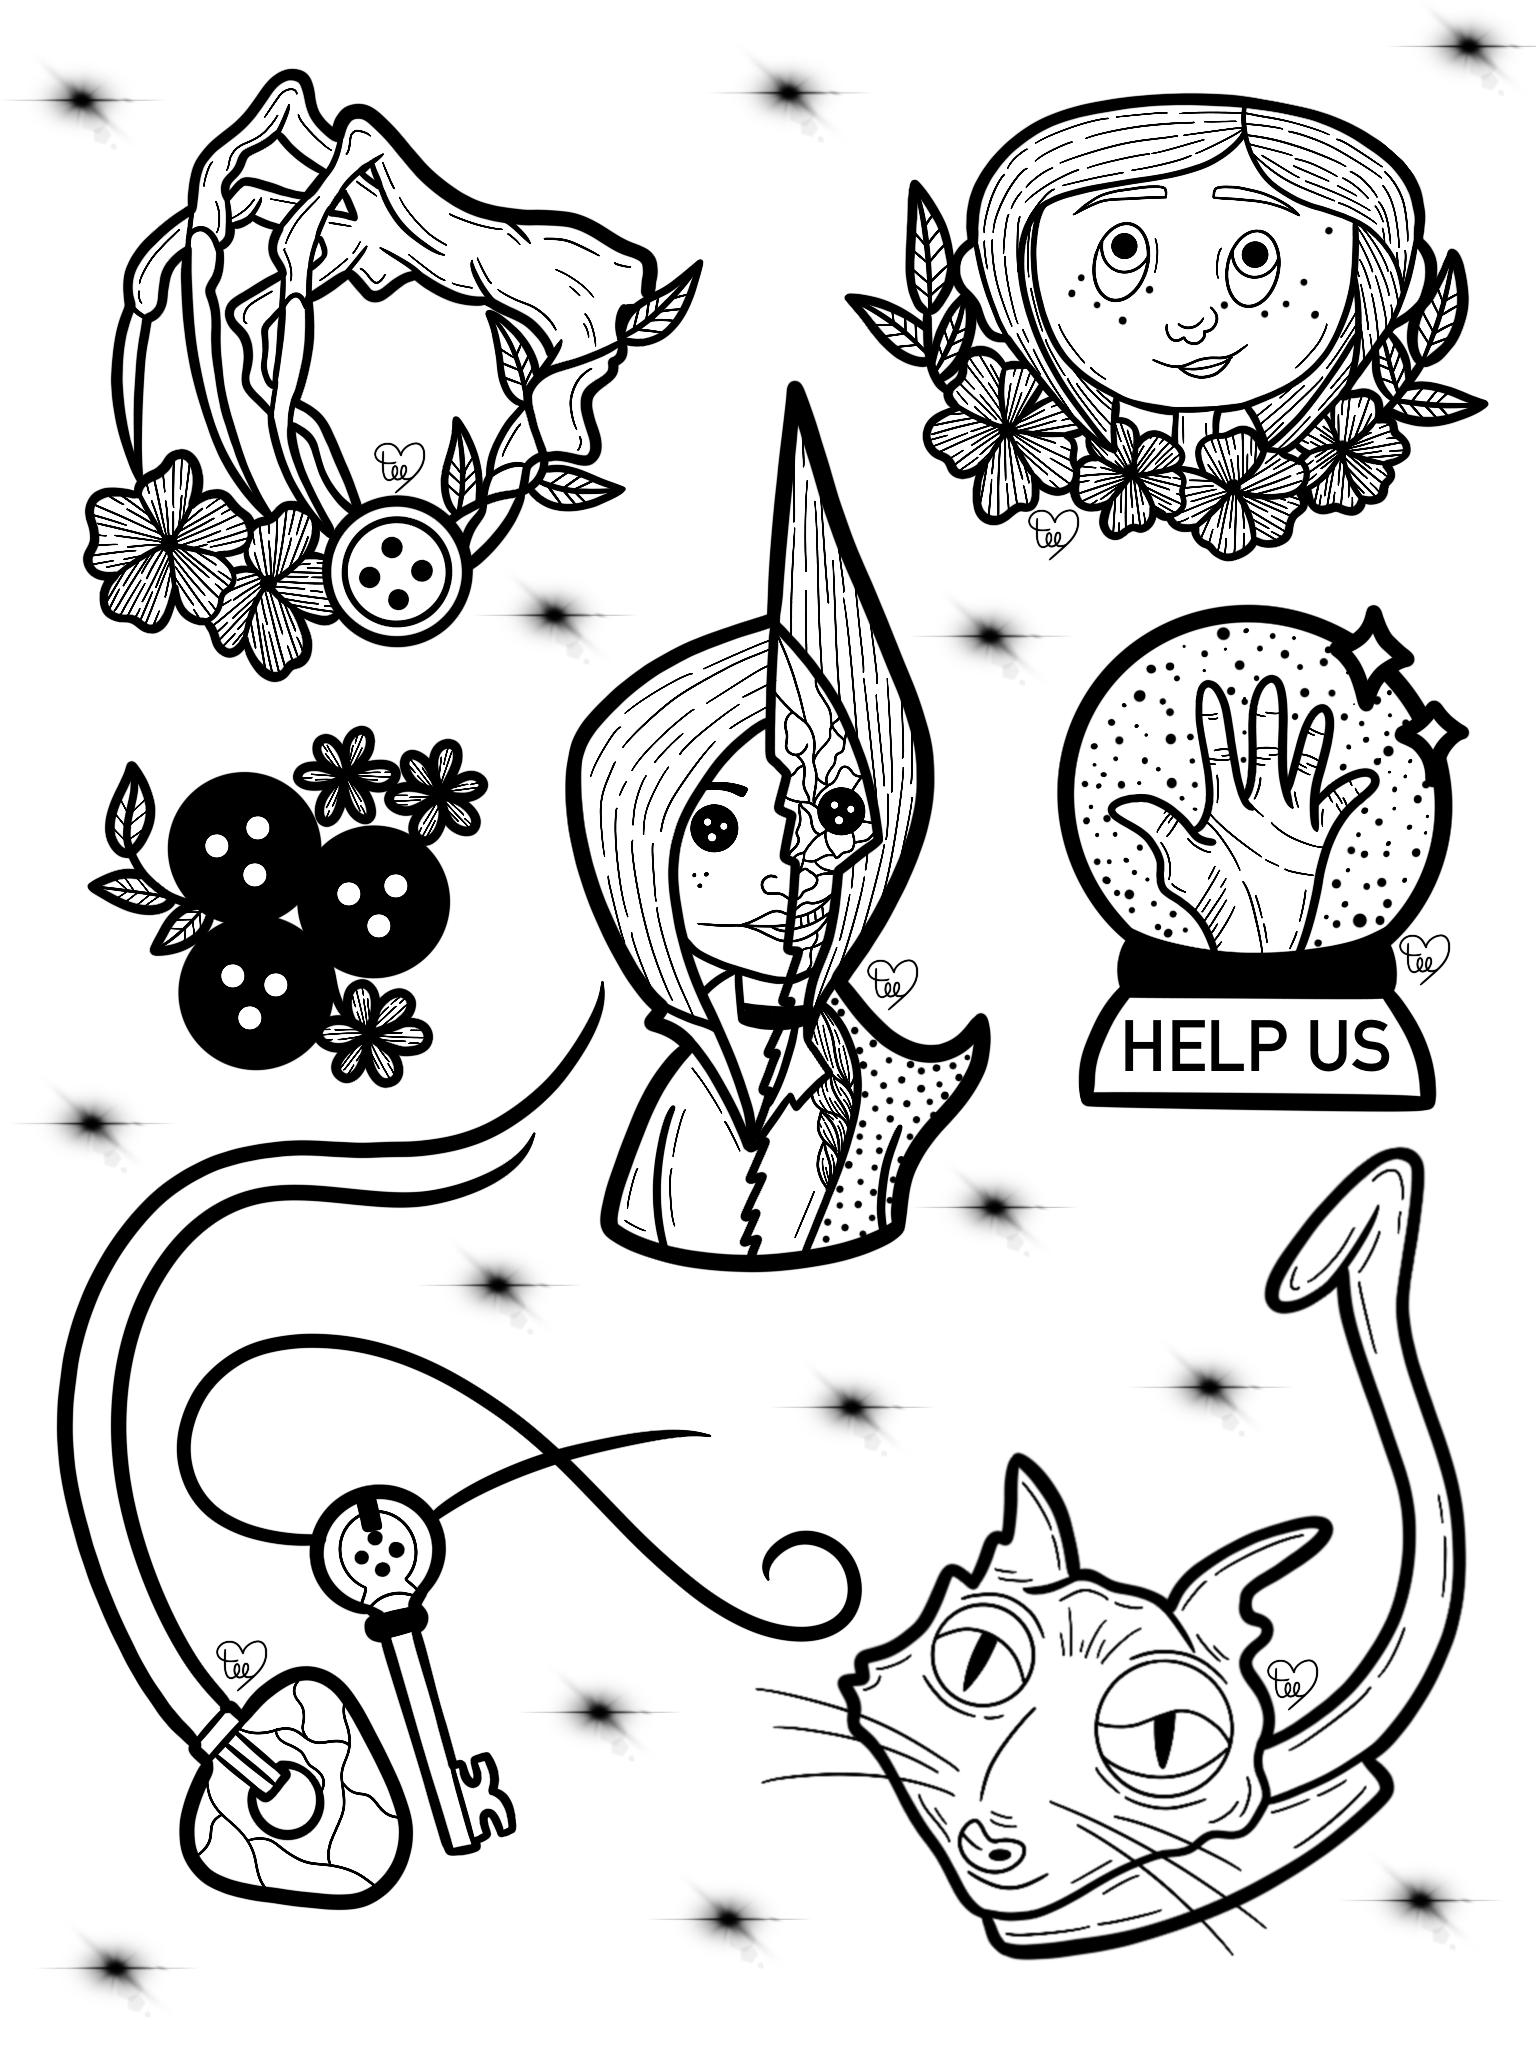 Coraline Tattoo Designs Flashsheet Artsbytee Coraline Tattoo Movie Tattoos Tattoo Flash Art